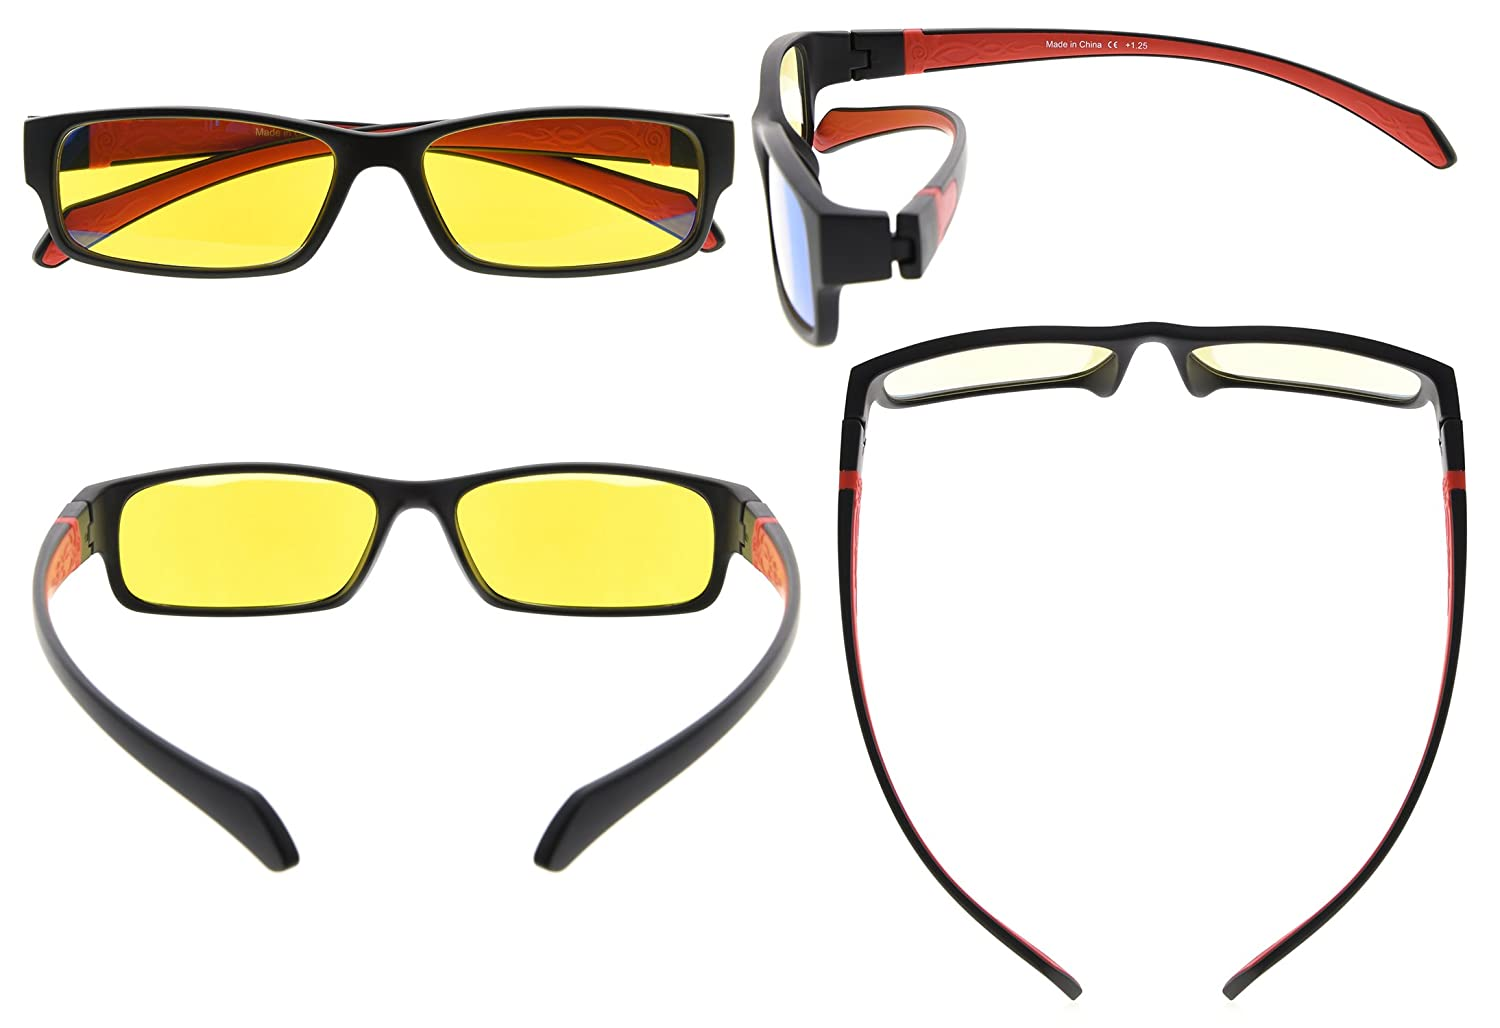 Eyekepper Vintage Computer Reading Glasses Readers-Anti-Reflective,Anti-Glare,Clear Lens,Uv Protection Men Women